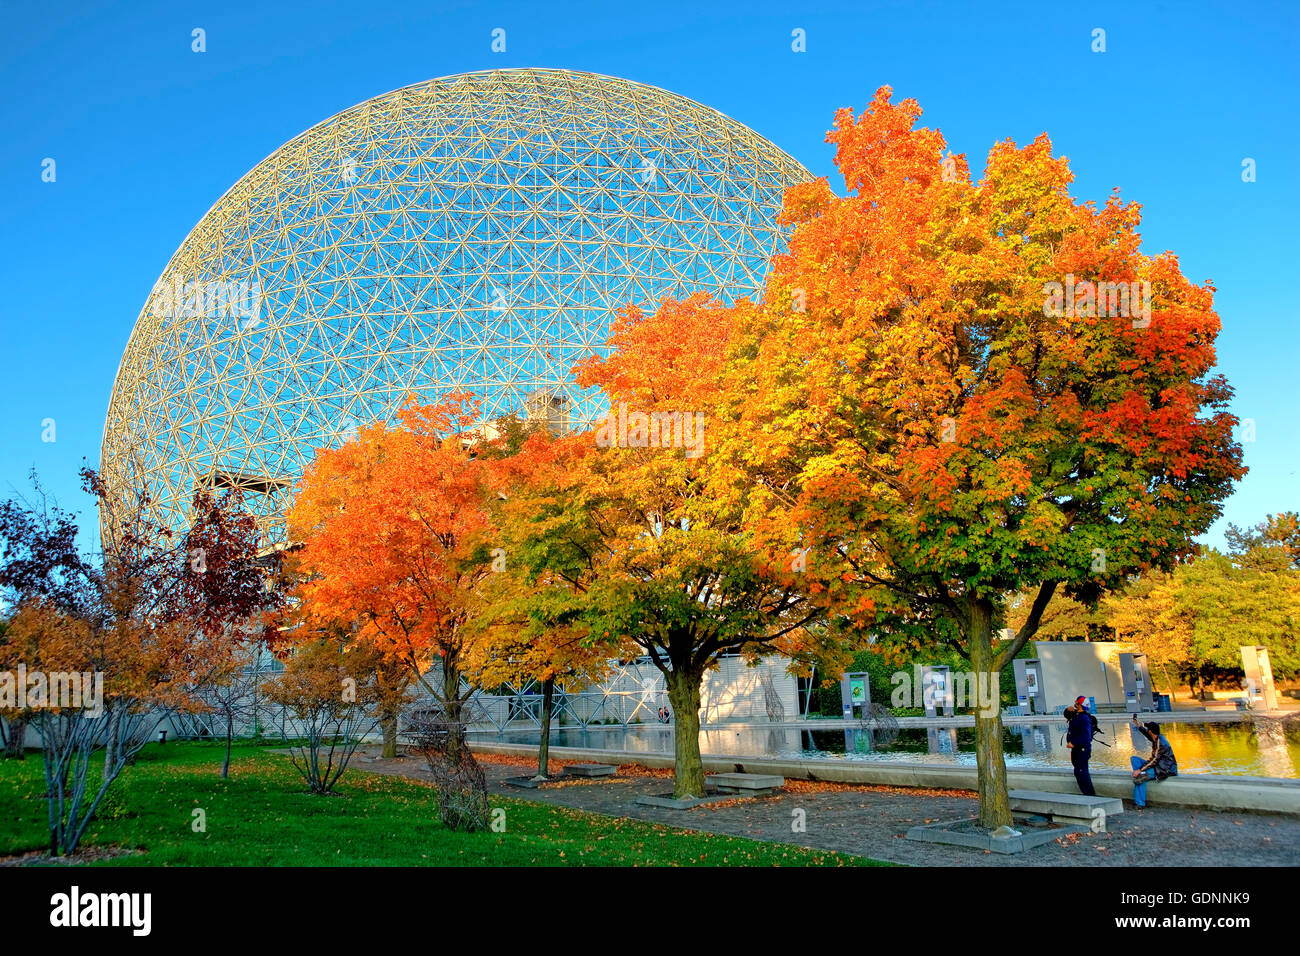 The Biosphere structure on the island of Saint Helene in Jean Drapeau Park in Montreal - Stock Image